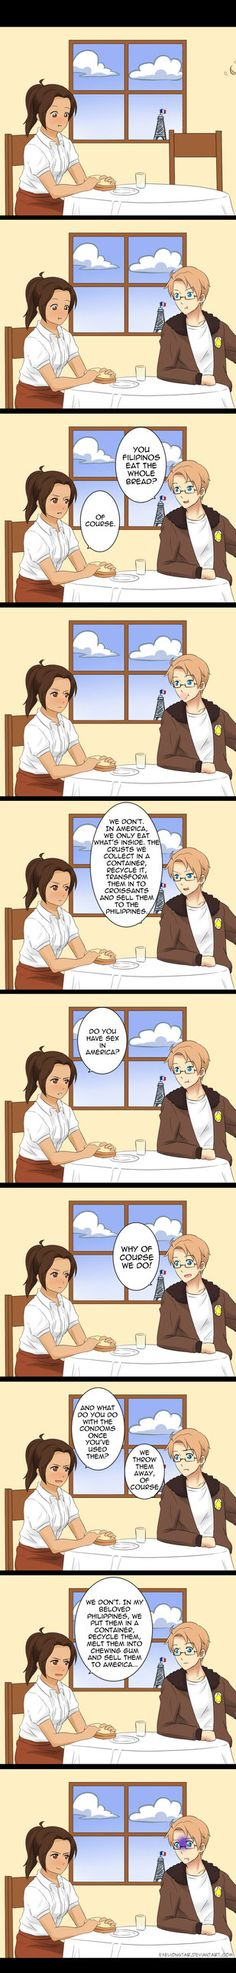 Filipino Joke: The Last is the Best by ExelionStar. This comic made me laugh and laugh